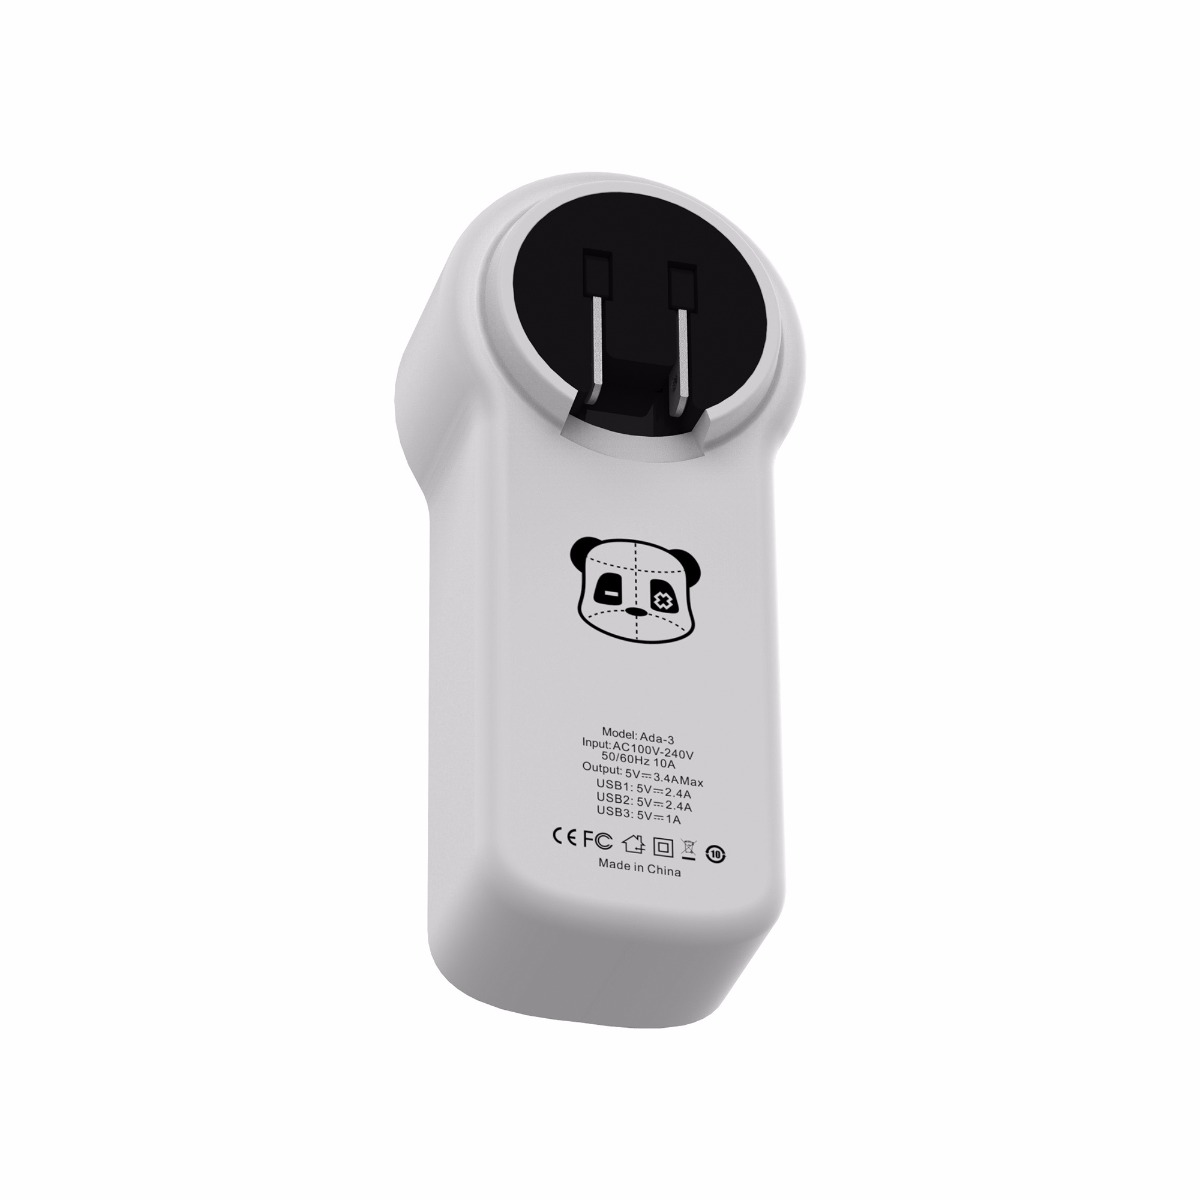 Patch Panda Ada-3 USB Wall Adapter for Mobile Phone